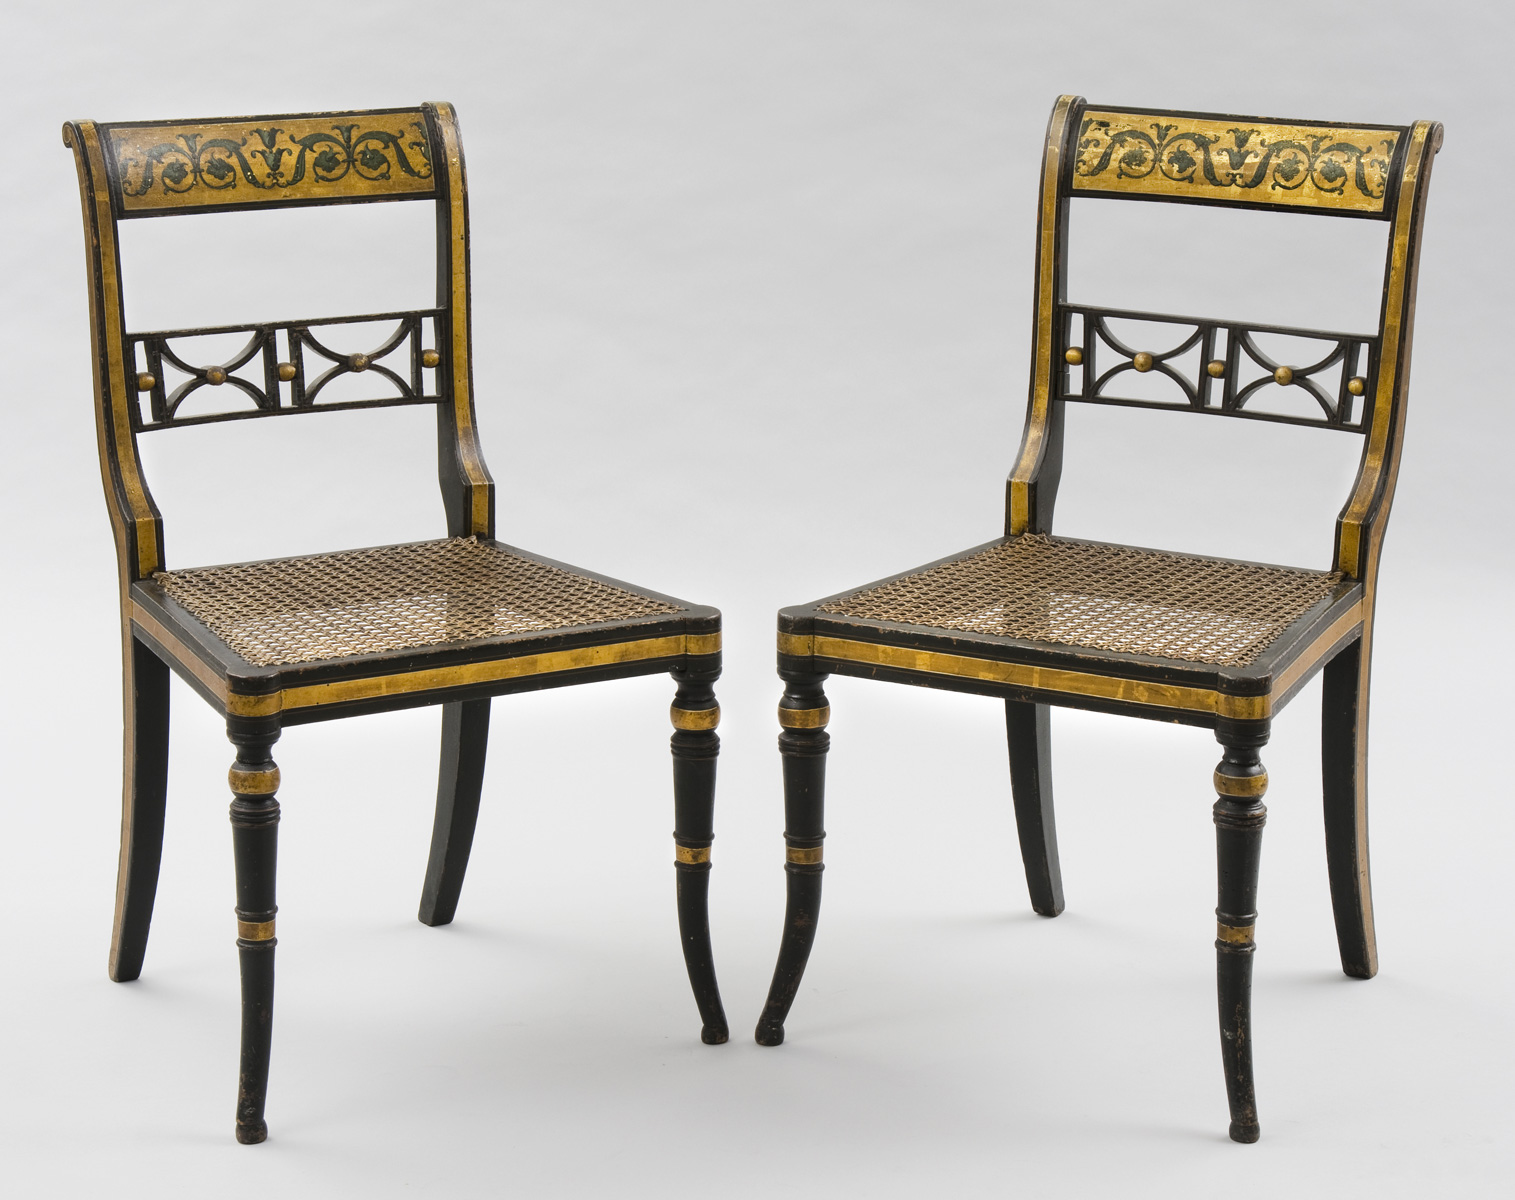 English Antique Pair Regency Gilded & Caned Side Chairs - Antique Chairs English Regency Gilded & Caned Antique Side Chairs